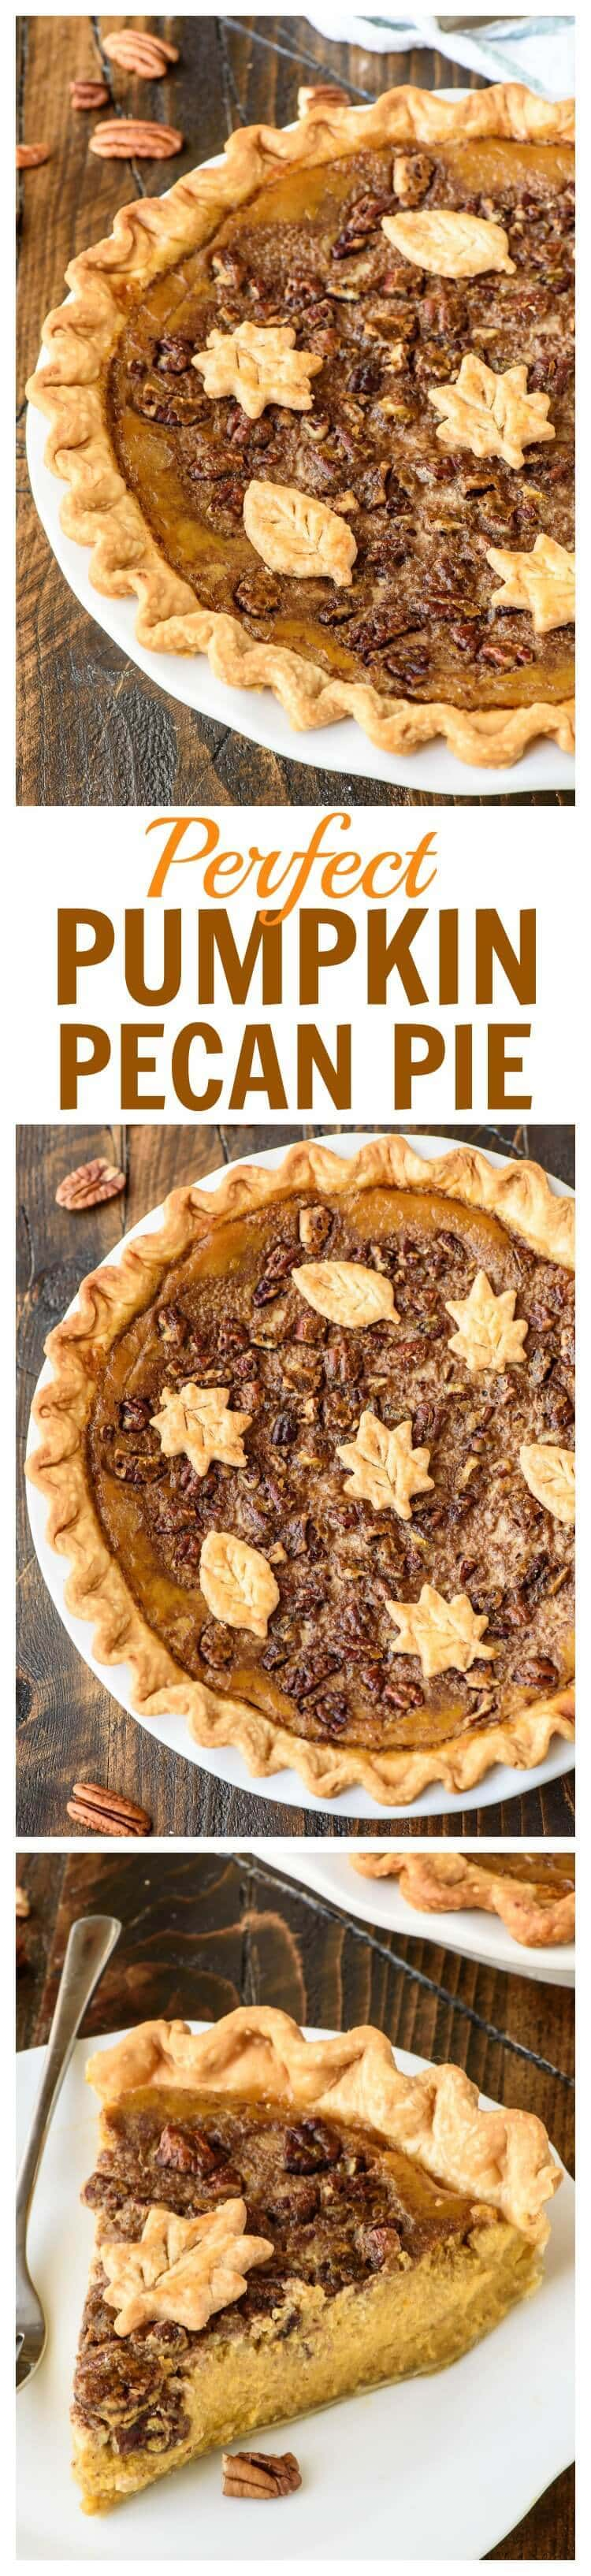 Perfect Pumpkin Pecan Pie. The best of pumpkin pie and pecan pie combined into one amazing dessert, plus how to bake perfect pumpkin pie that won't crack or burn!